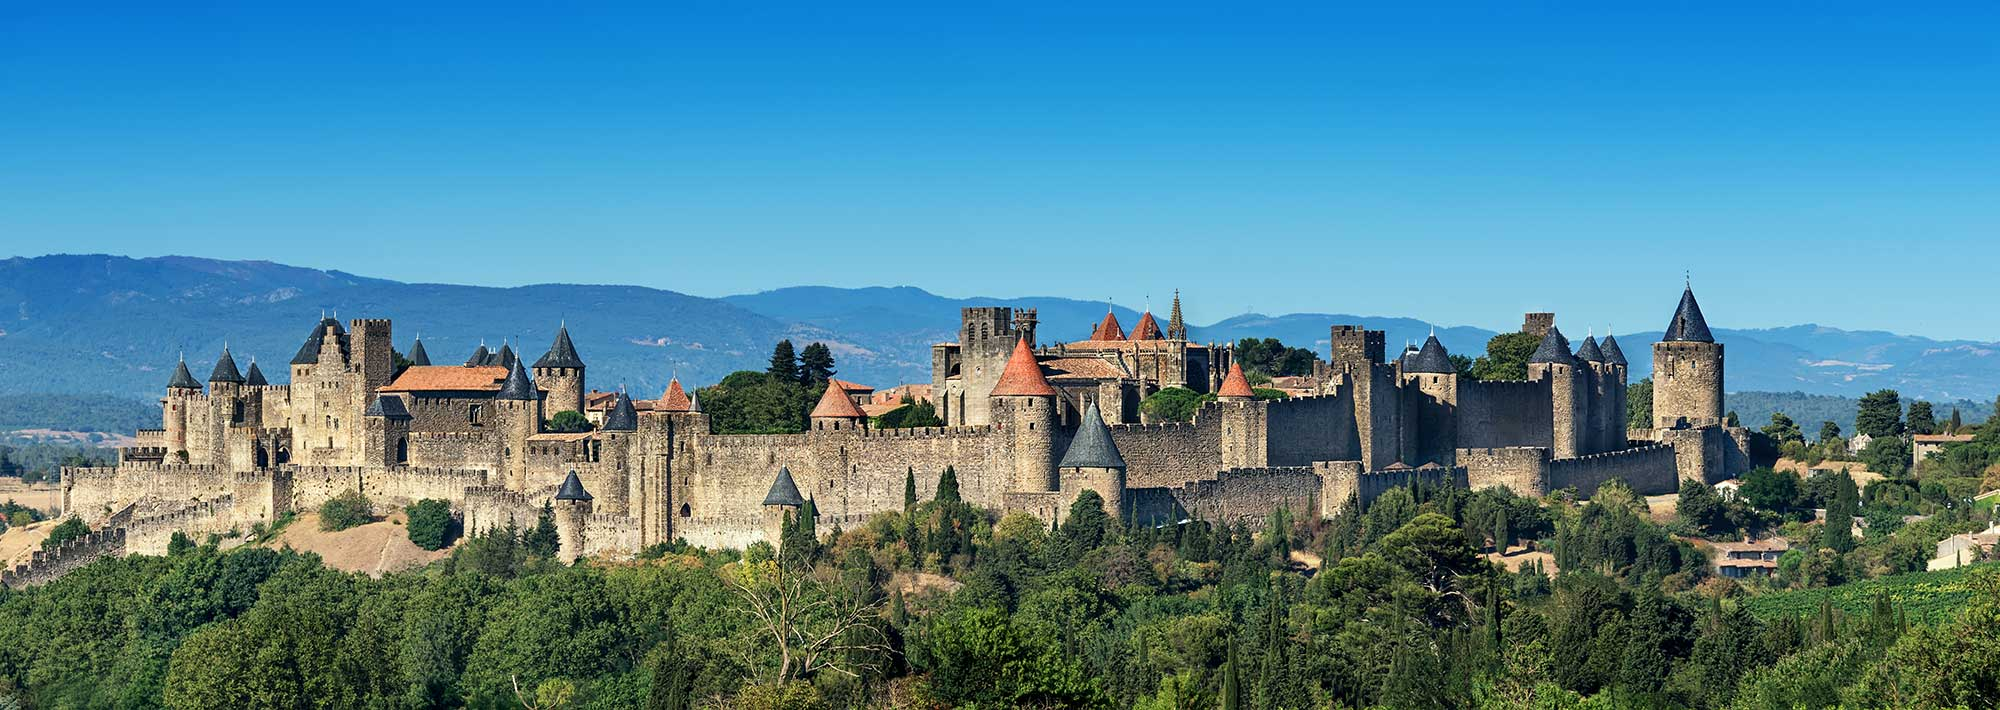 Carcassonne France - The Old City | jhtravel.orf